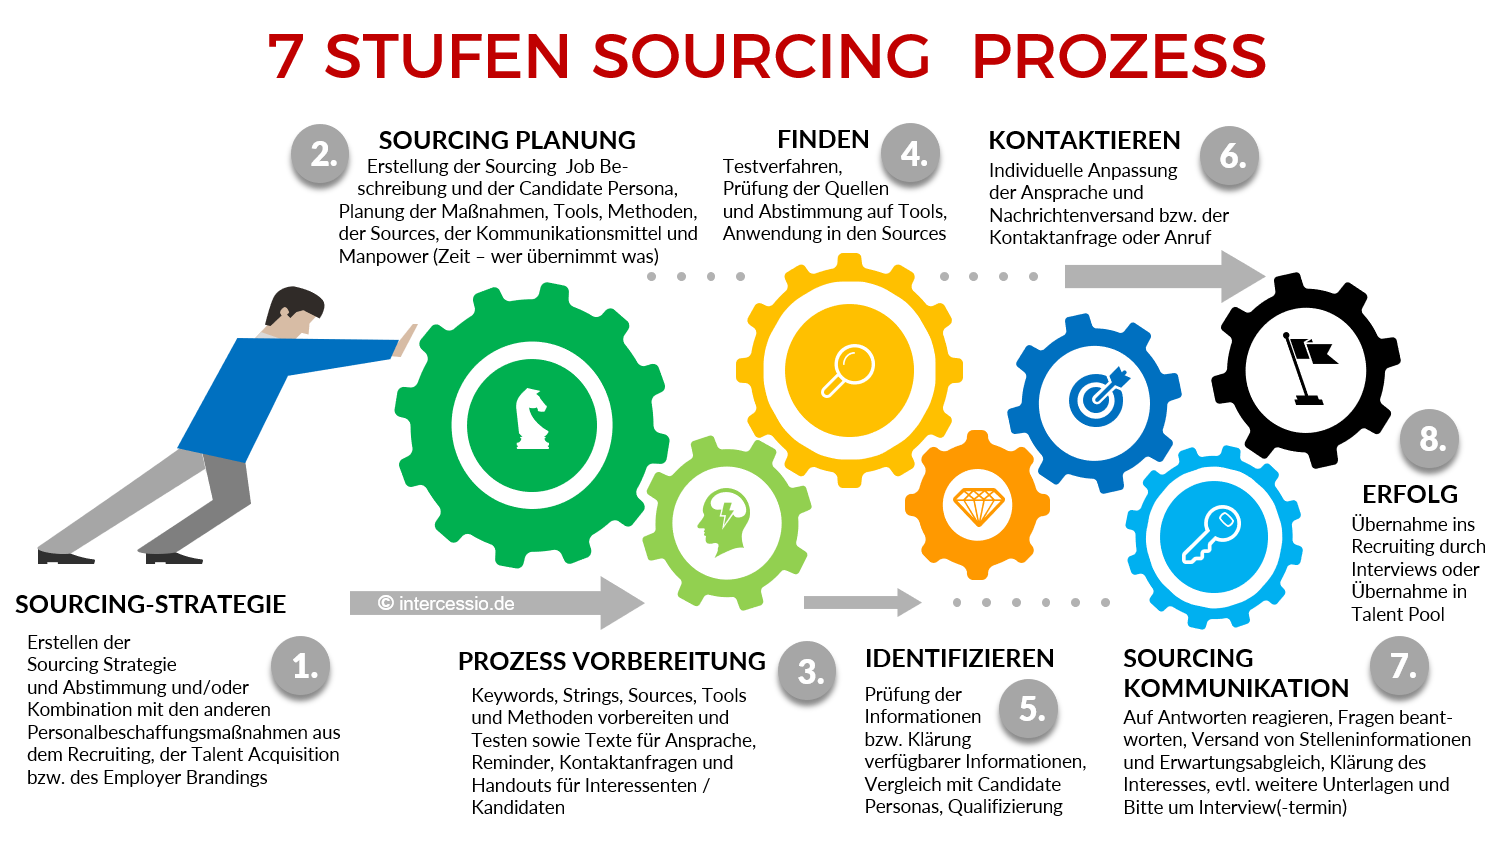 Der 7 Stufen Active Sourcing Prozess - by Intercessio